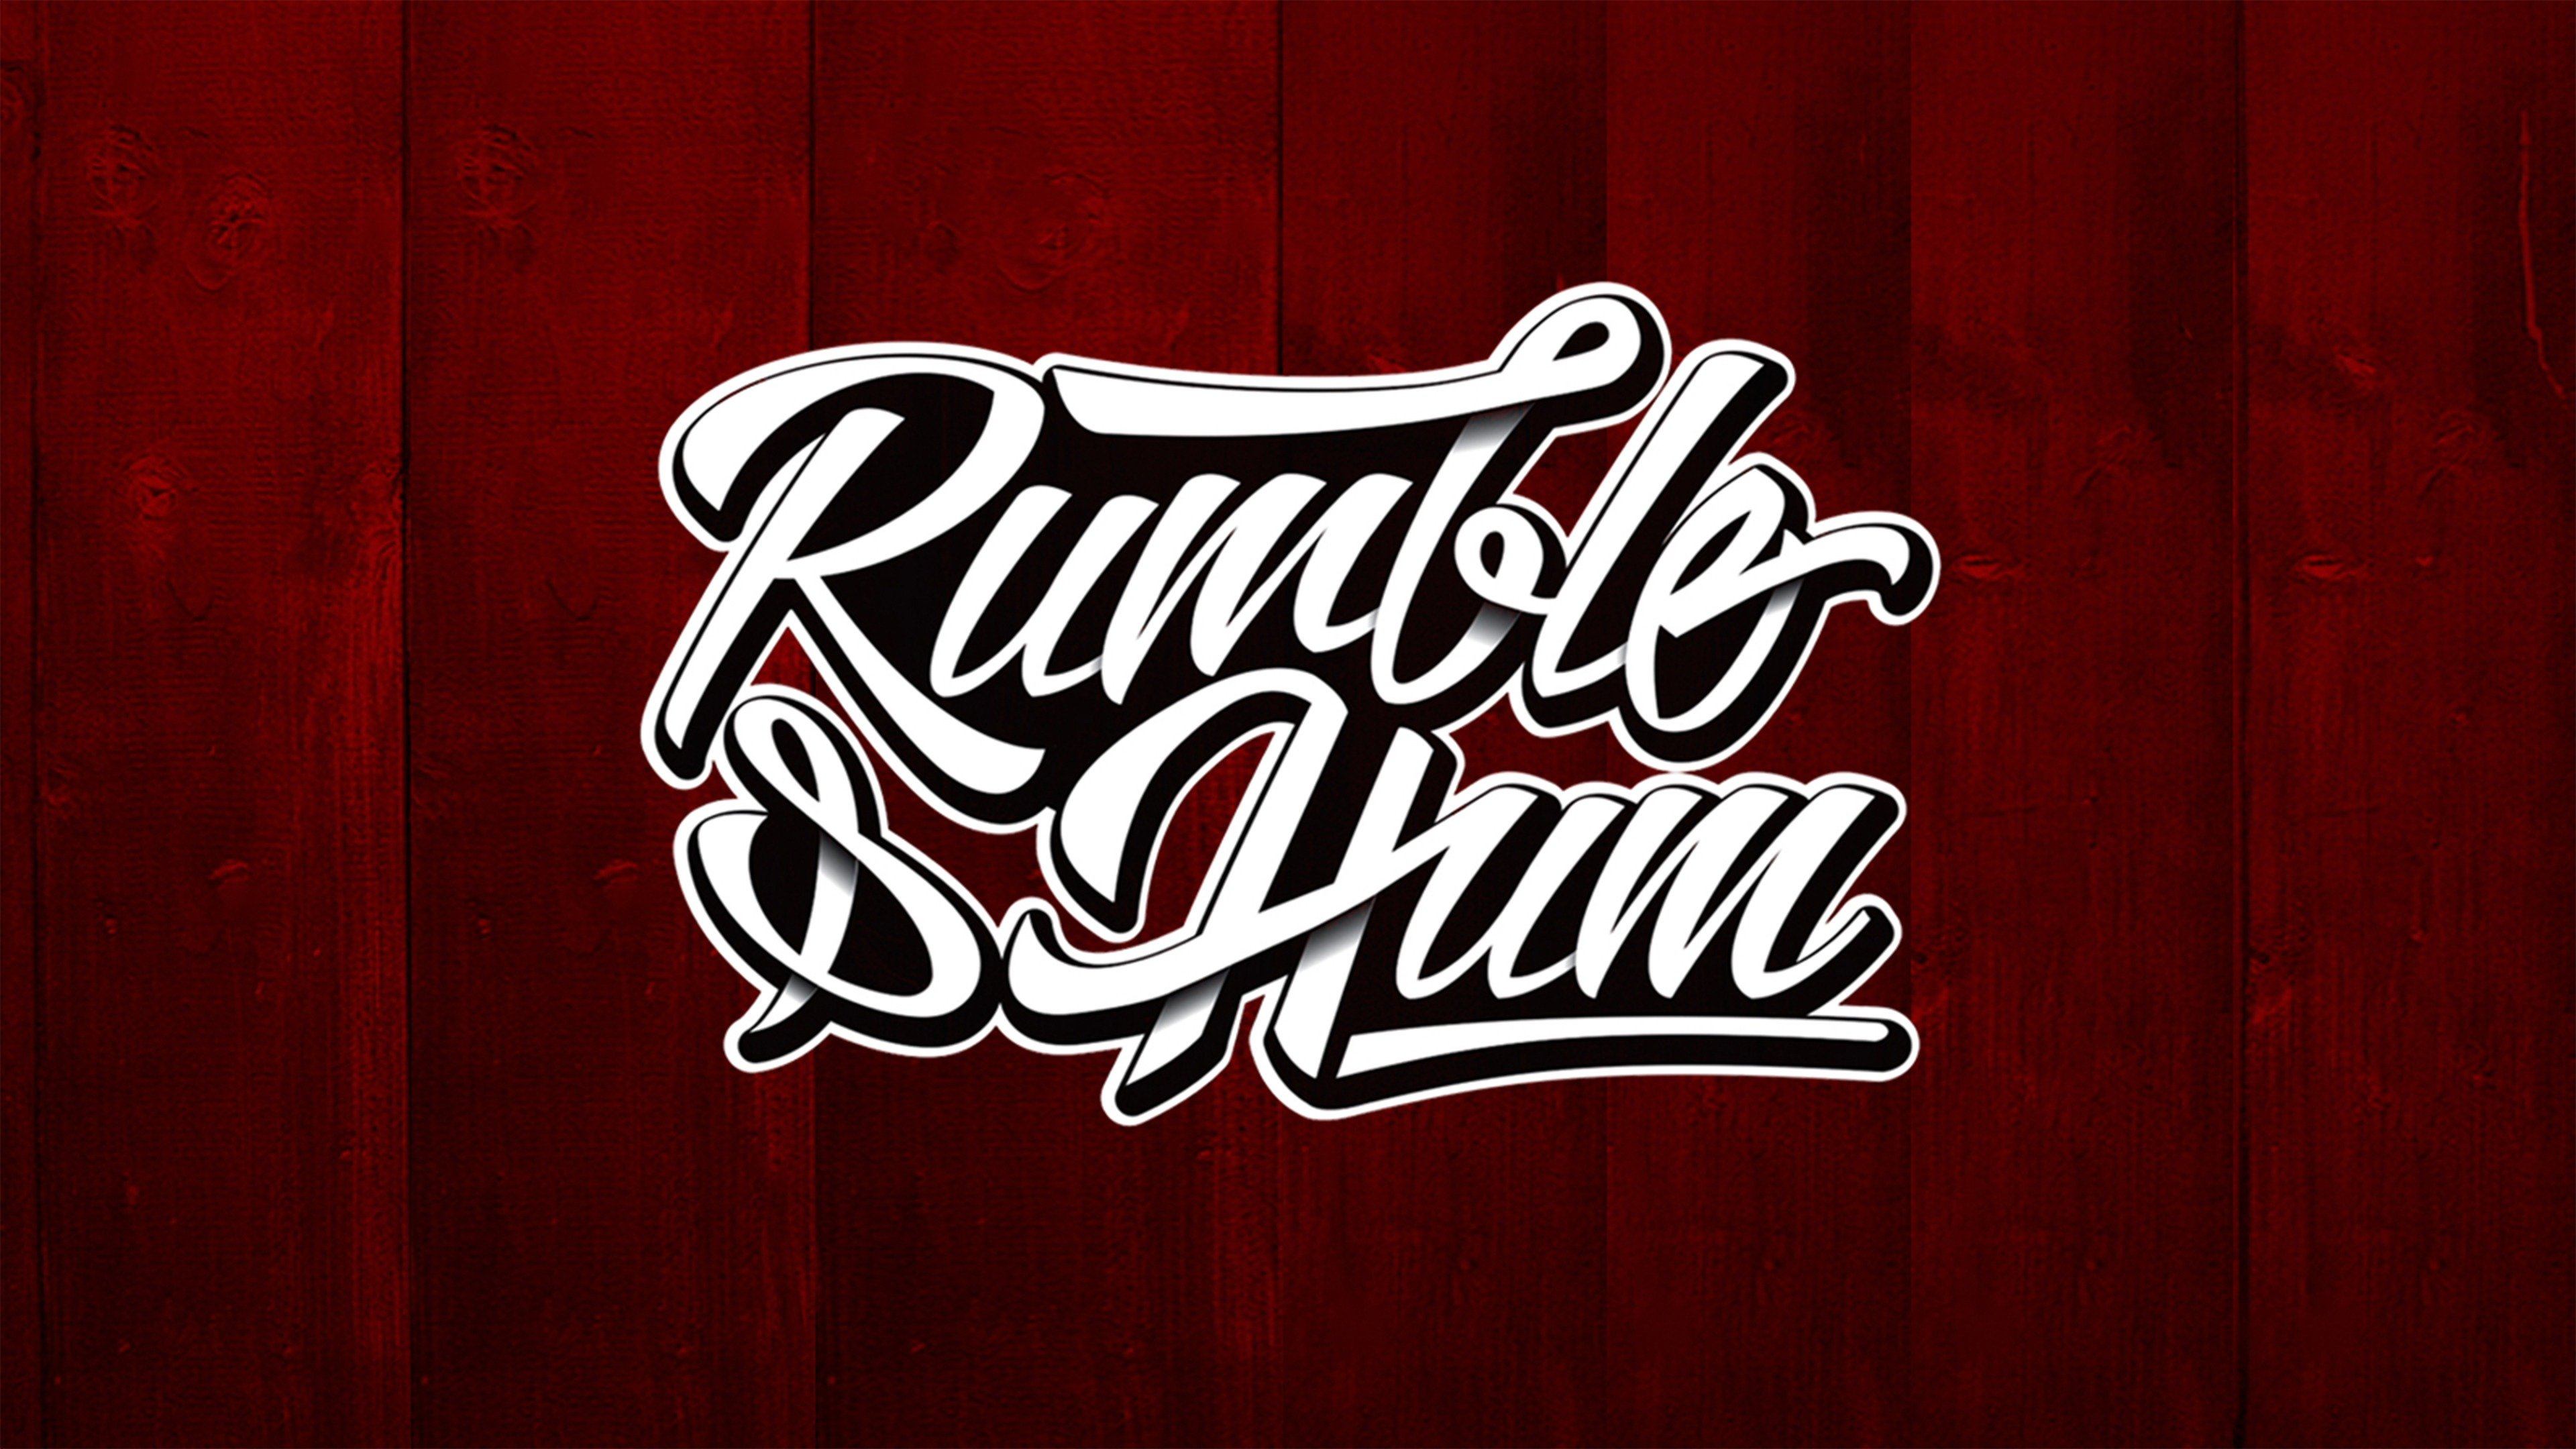 Rumble and Hum